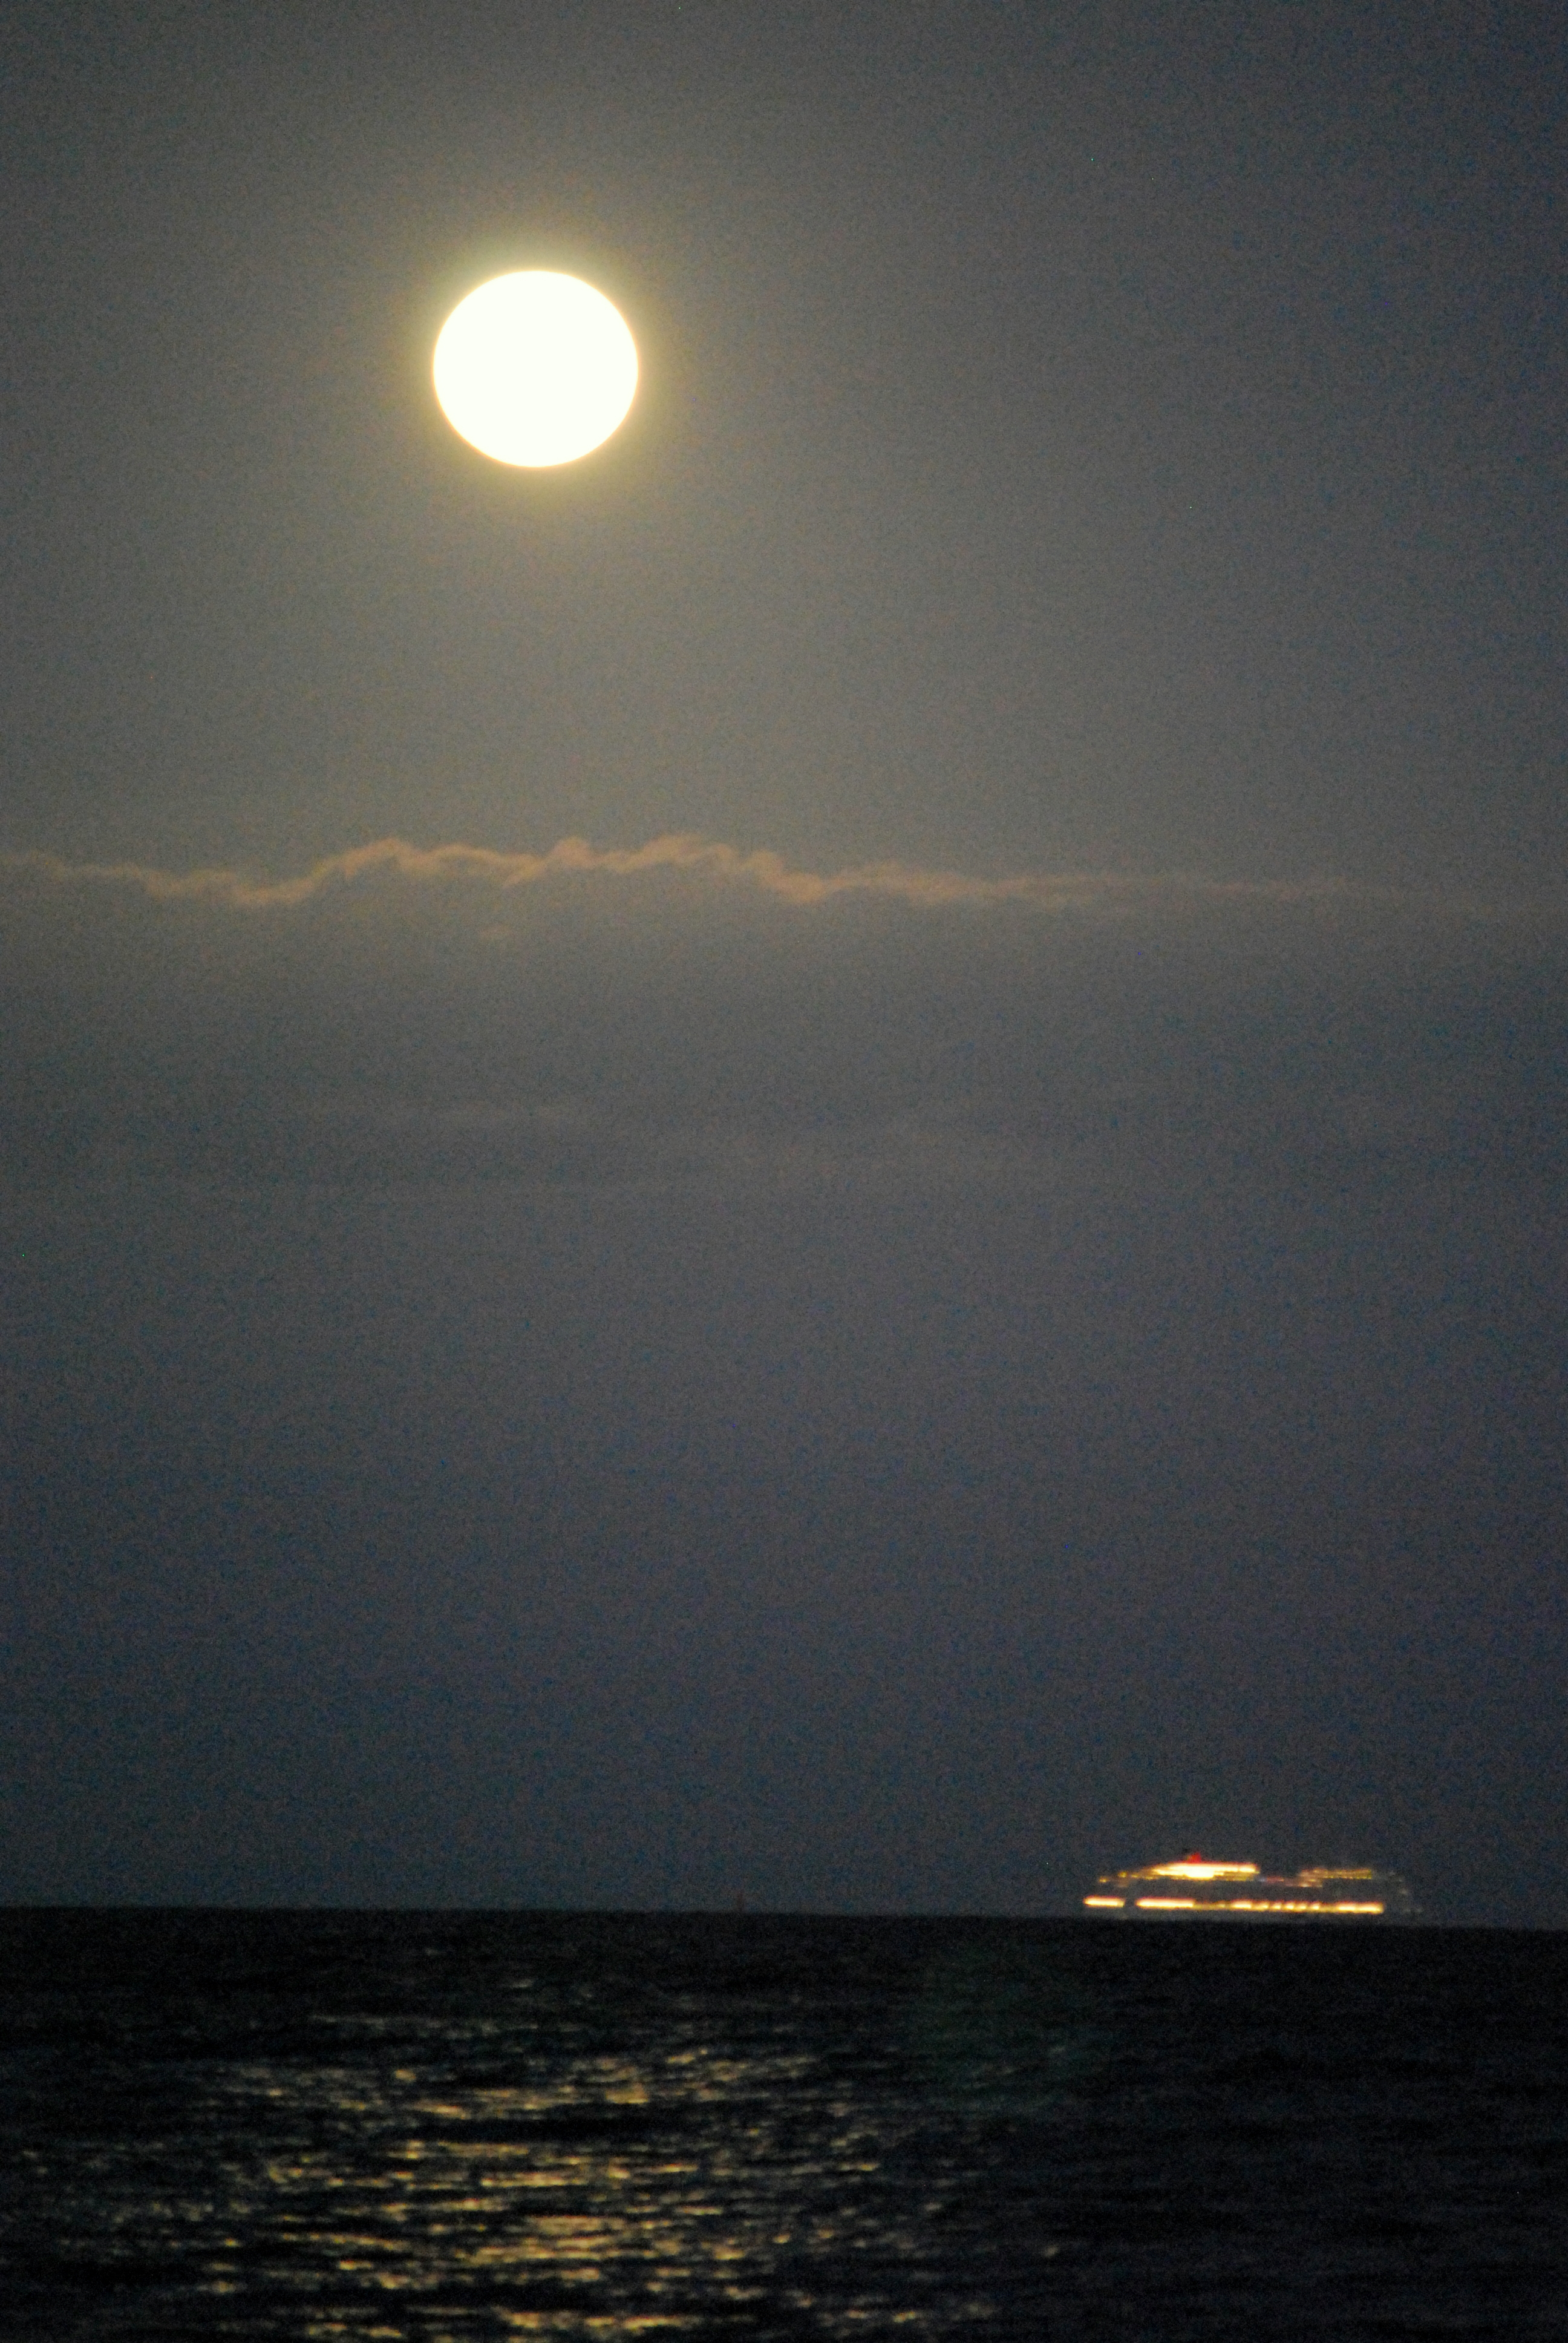 Supermoon 2012 Over Oahu: James Davidson